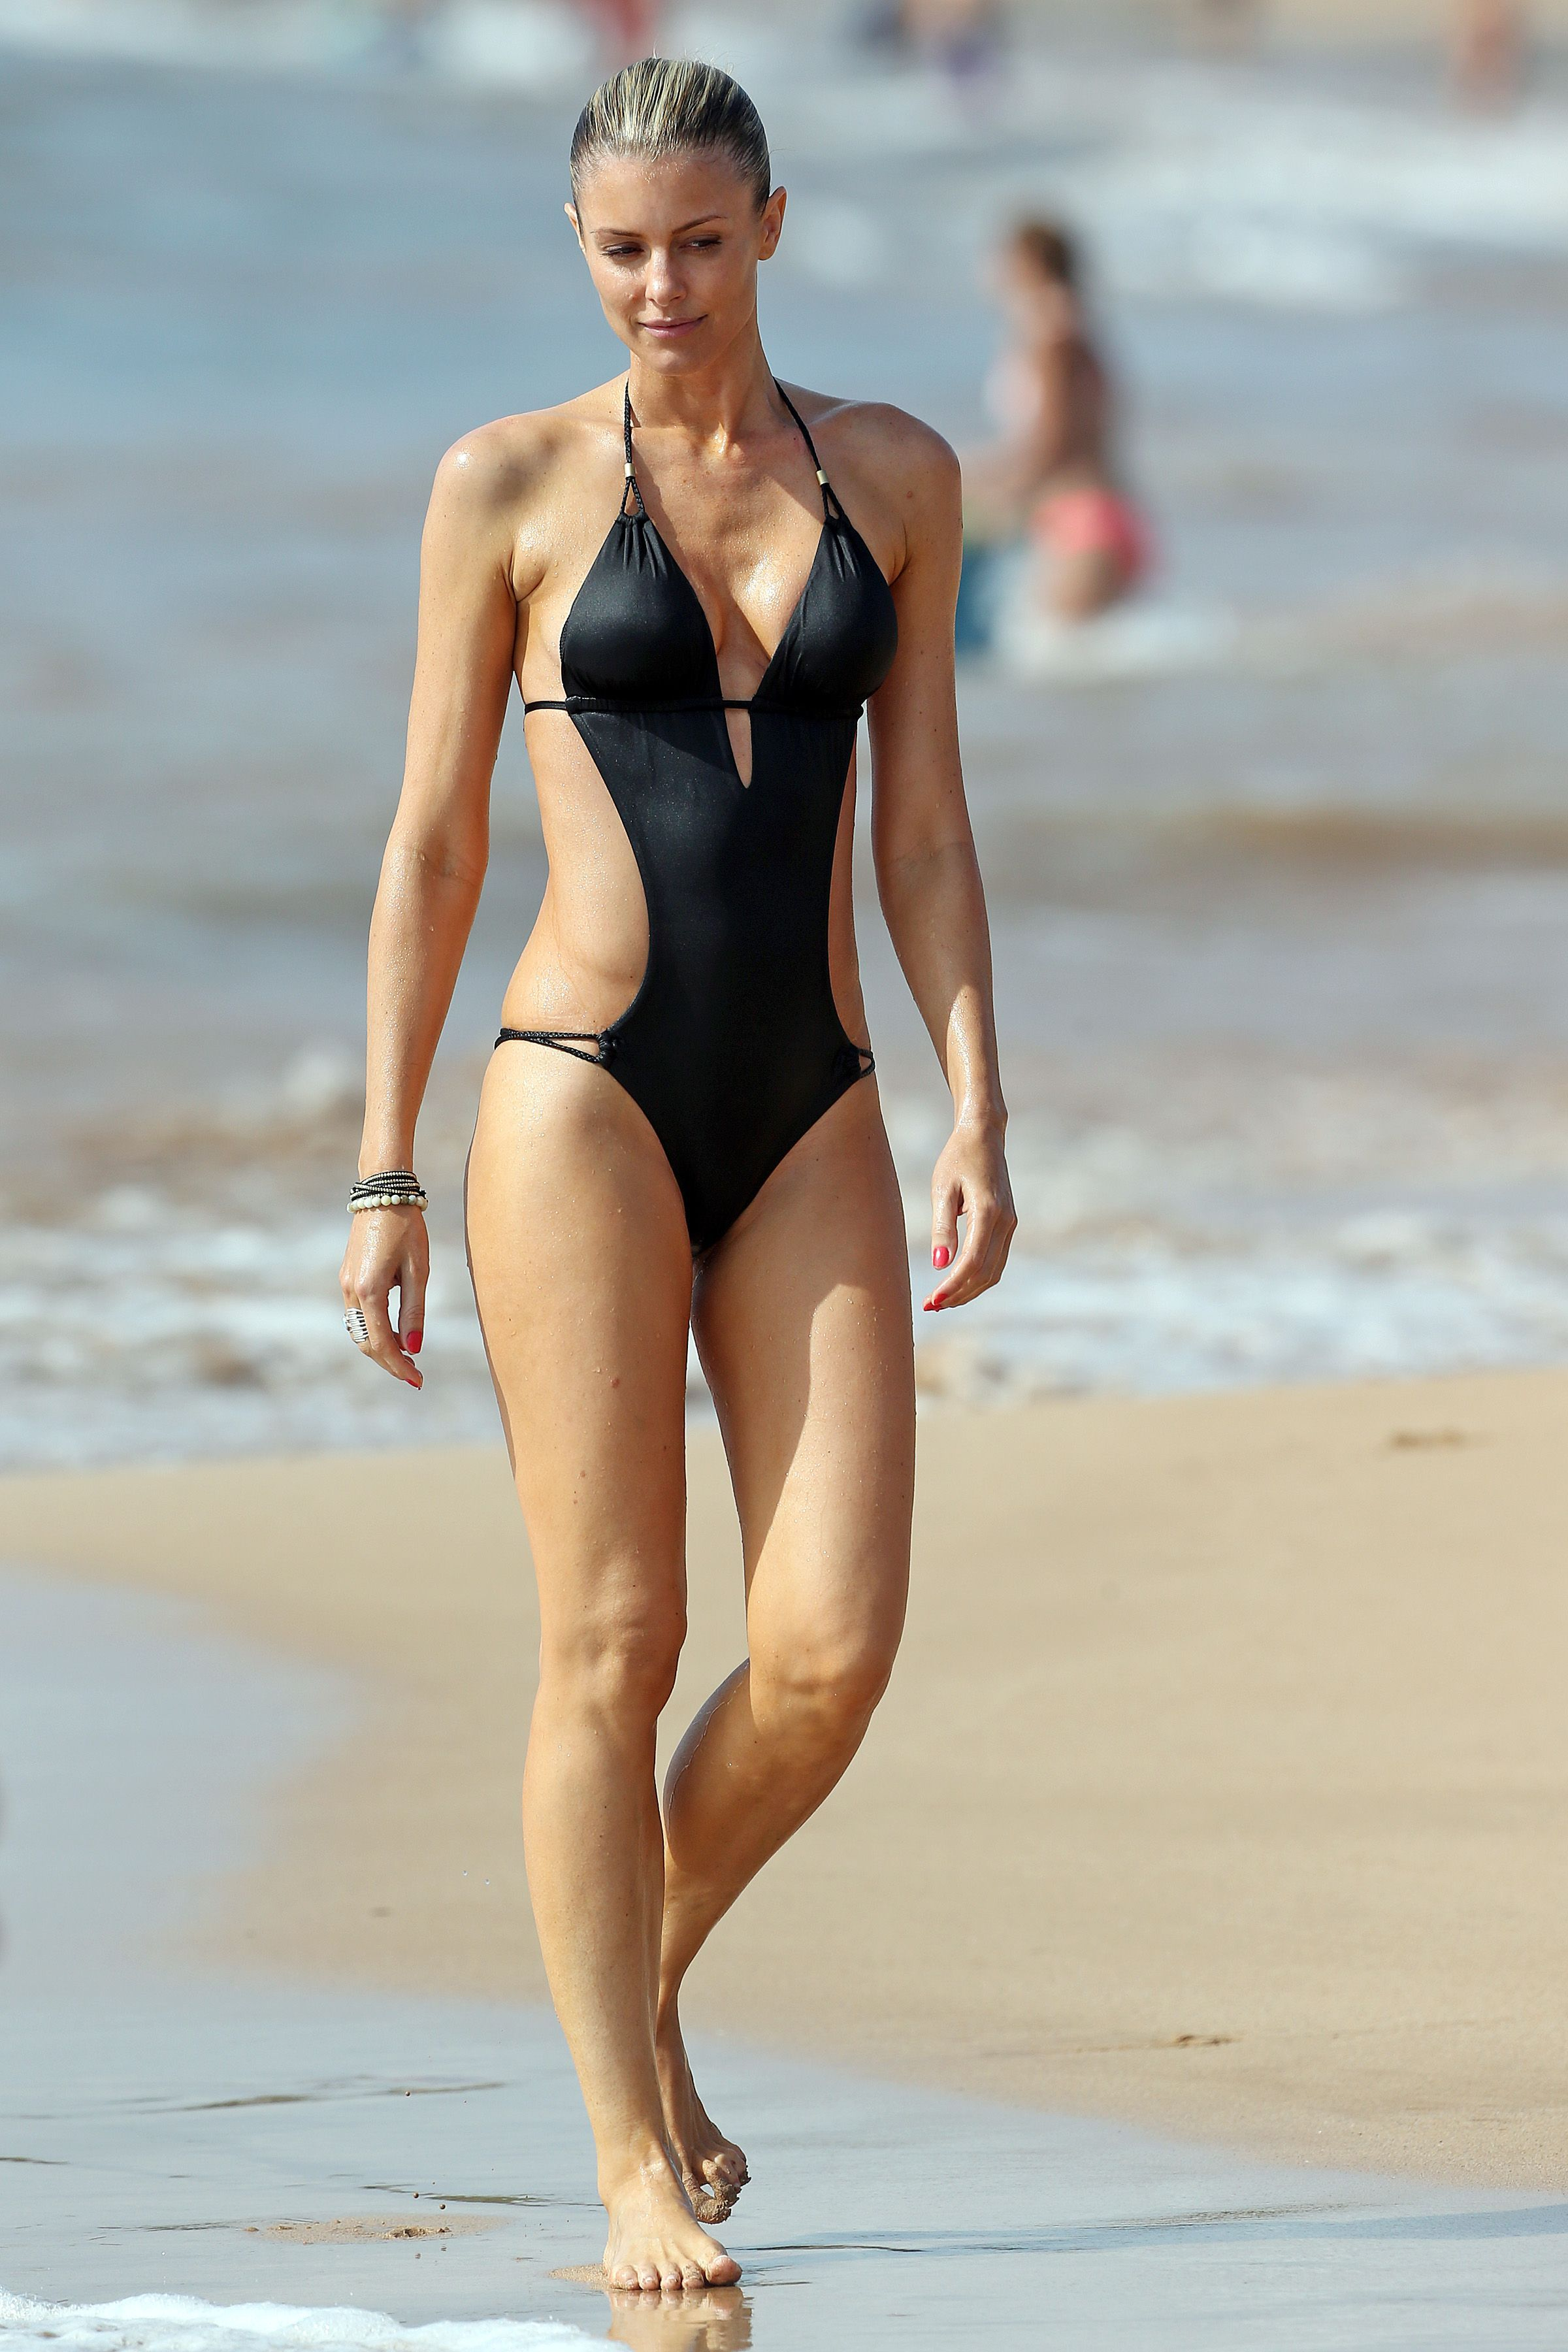 Men Who Love Black Women >> Paige Butcher's Feet